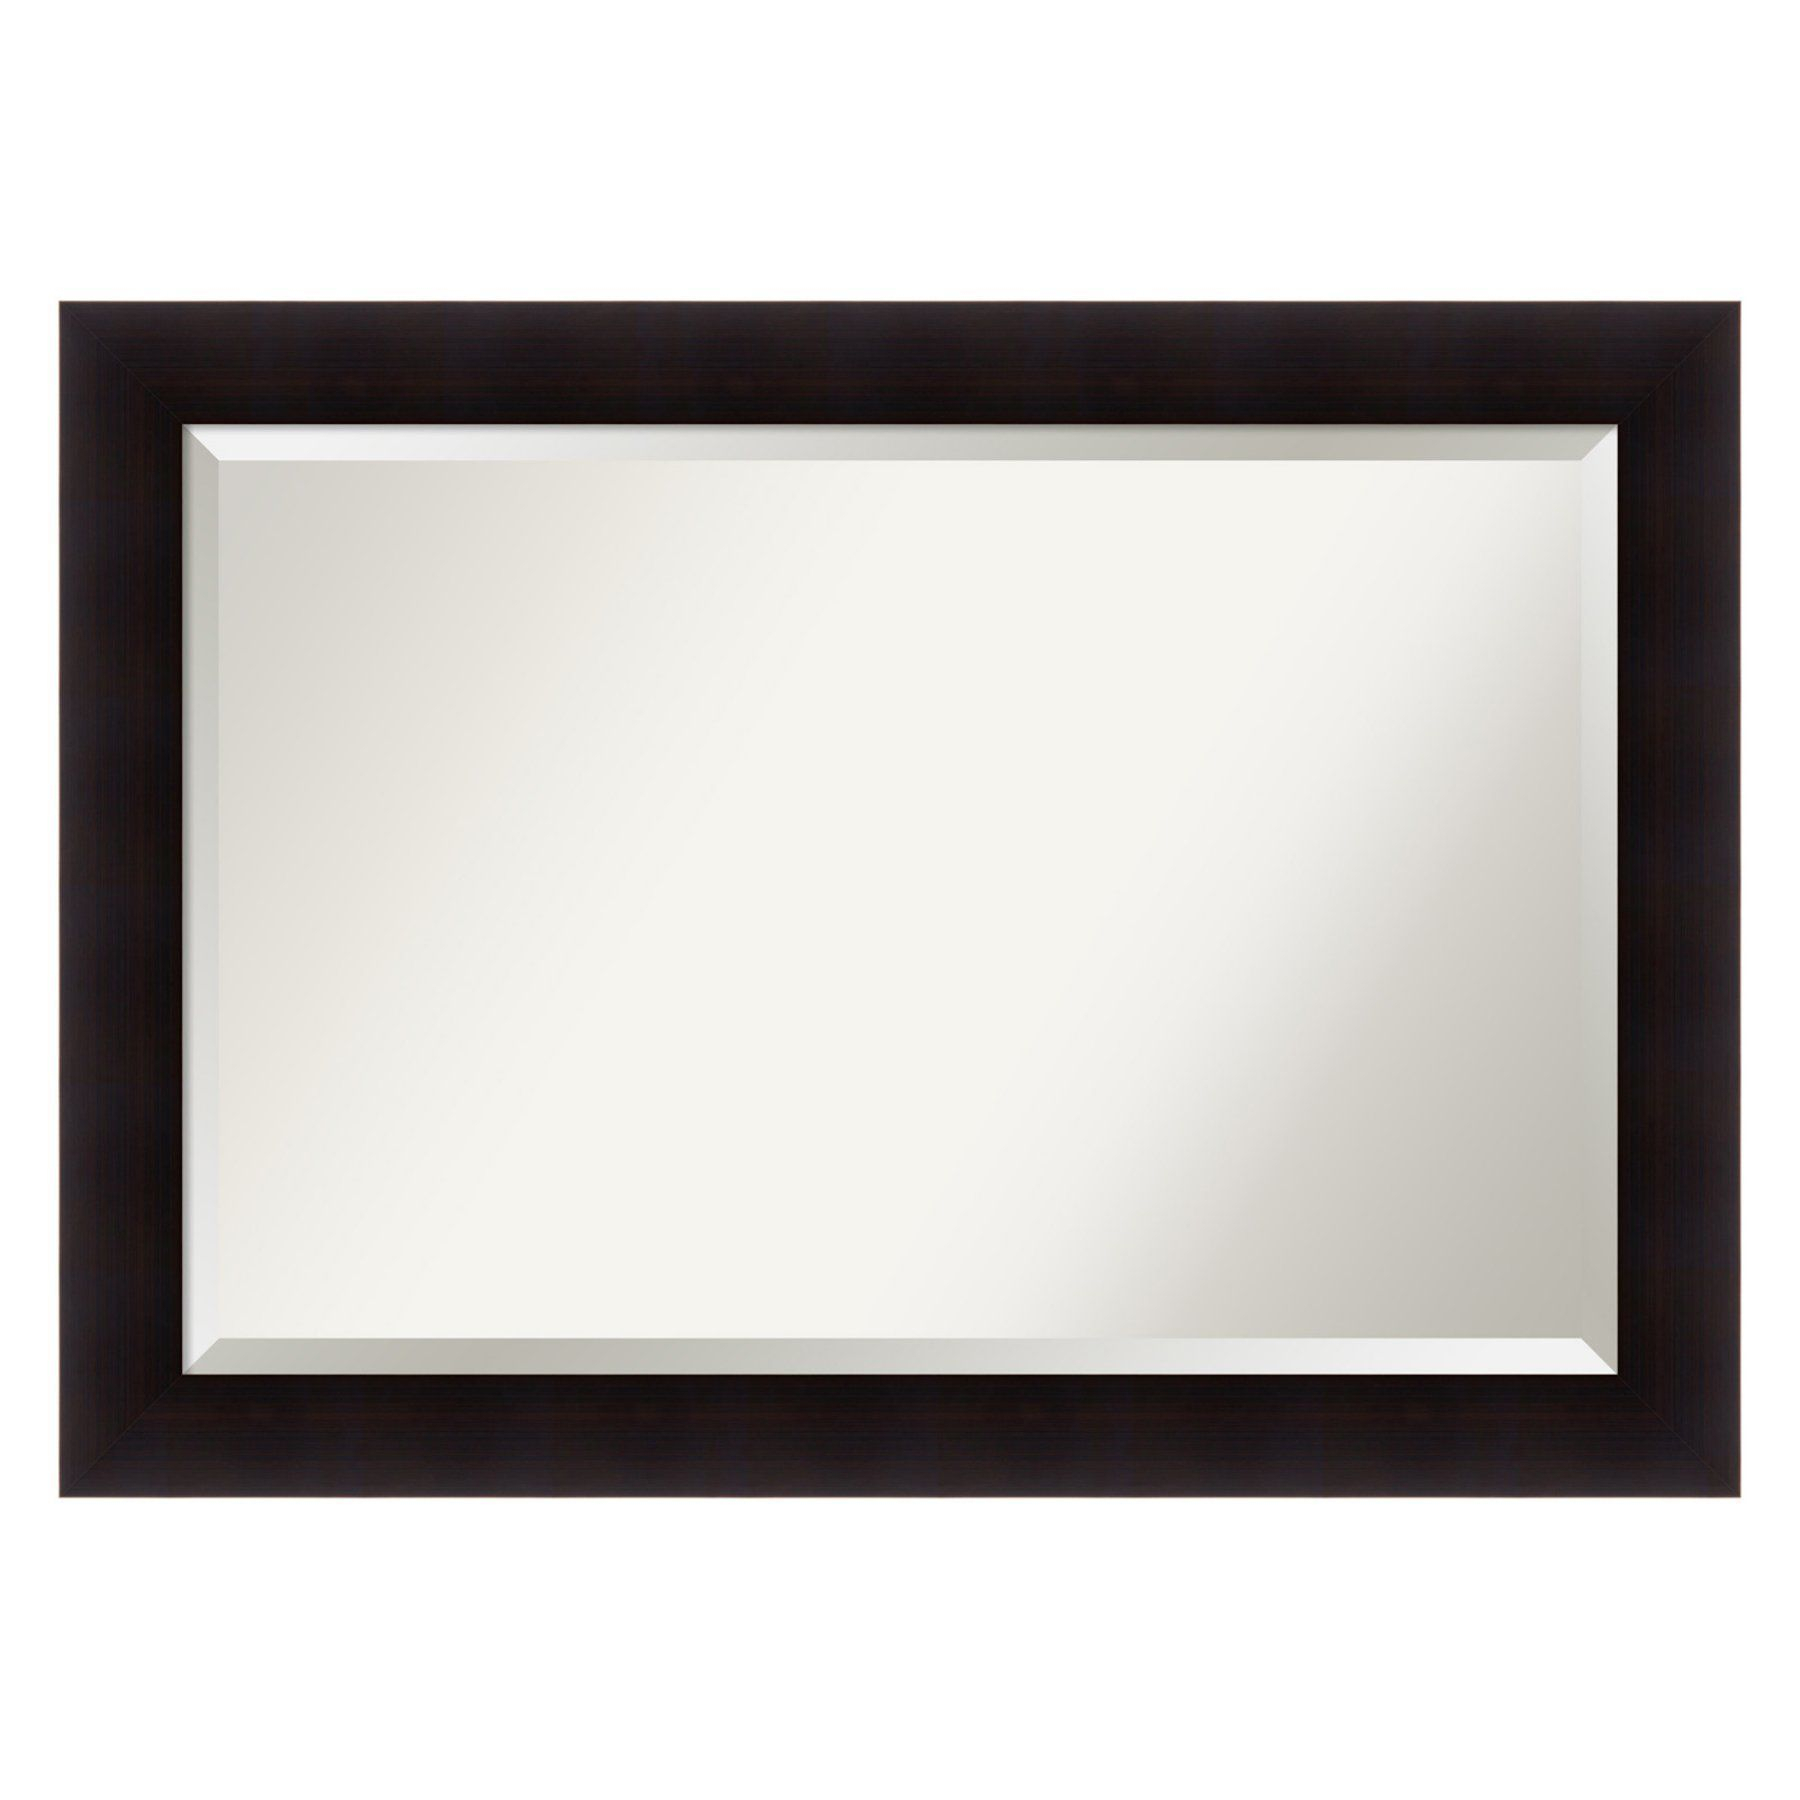 Amanti Art Portico Bathroom Mirror - Dsw3941600 | Products inside Peetz Modern Rustic Accent Mirrors (Image 2 of 30)